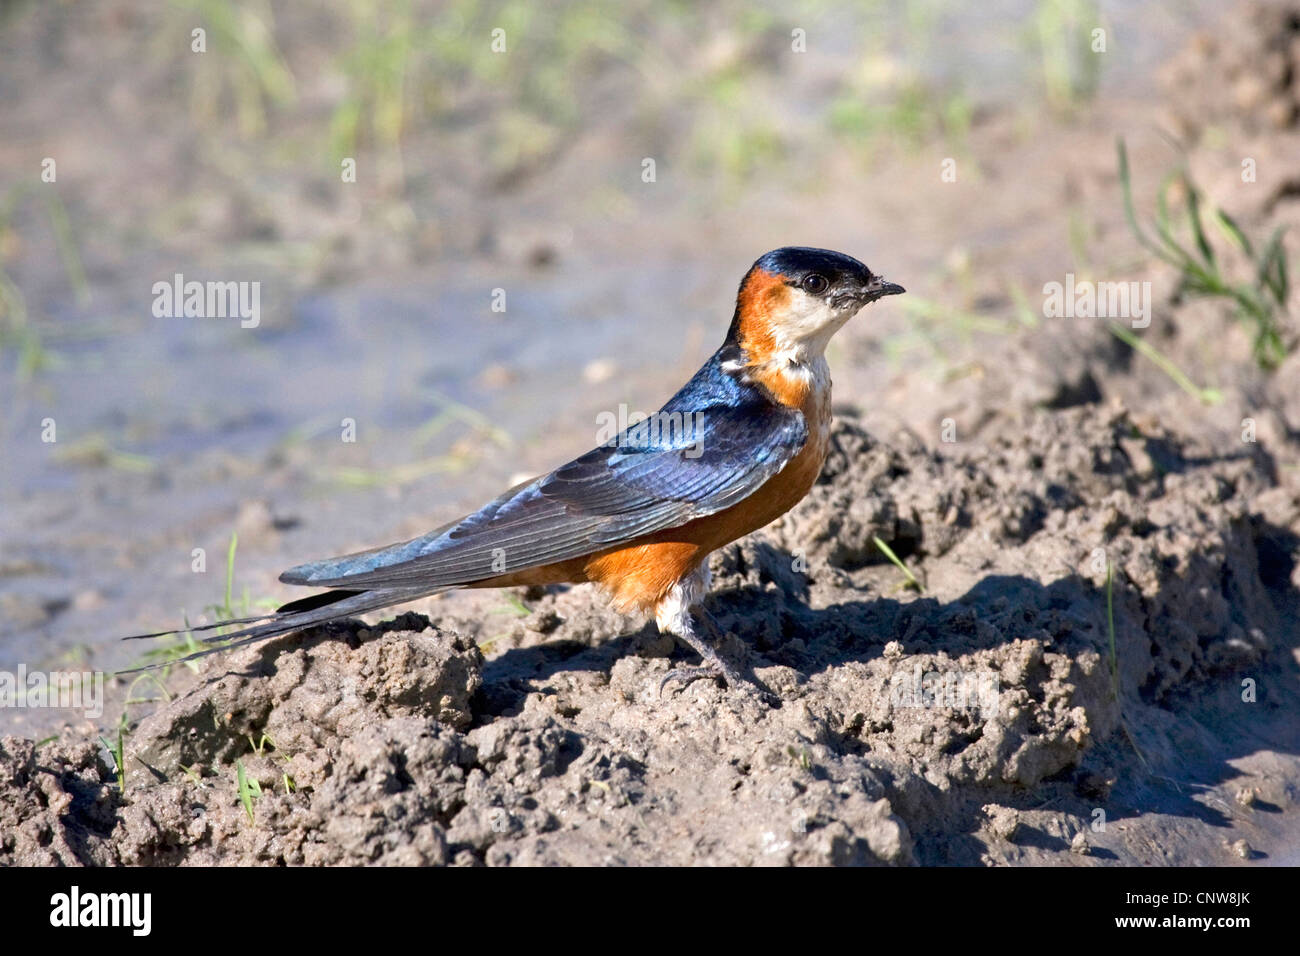 mosque swallow (Hirundo senegalensis), collecting nesting material in a puddle, Namibia, Mahango National Park - Stock Image